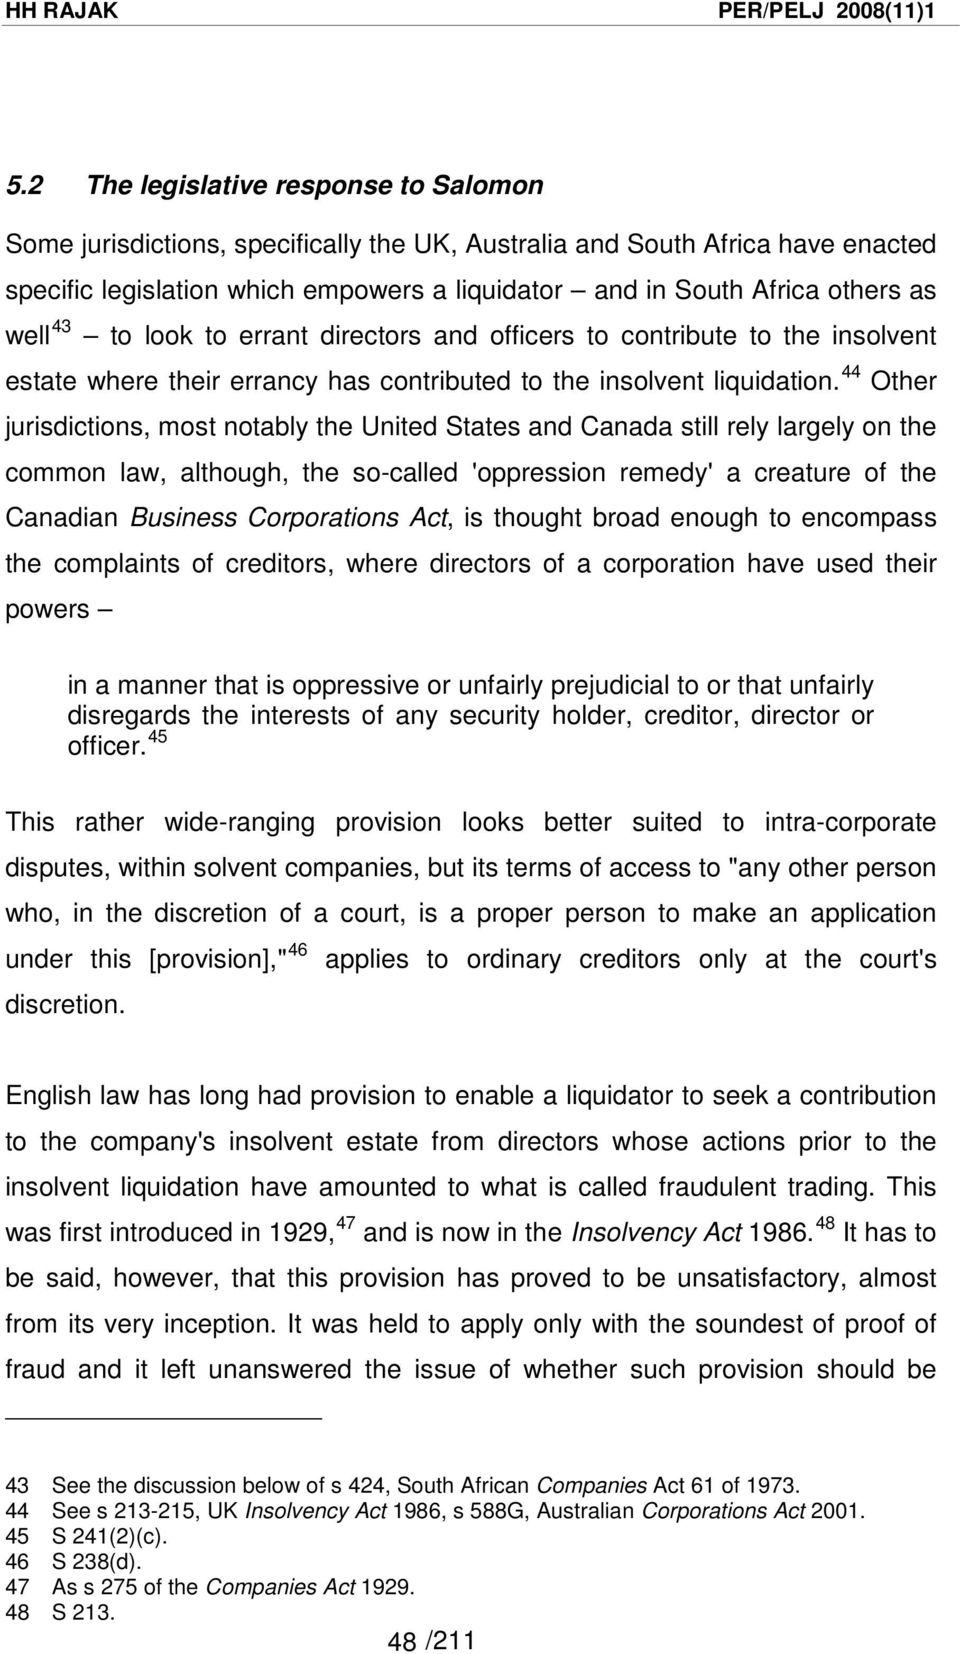 44 Other jurisdictions, most notably the United States and Canada still rely largely on the common law, although, the so-called 'oppression remedy' a creature of the Canadian Business Corporations